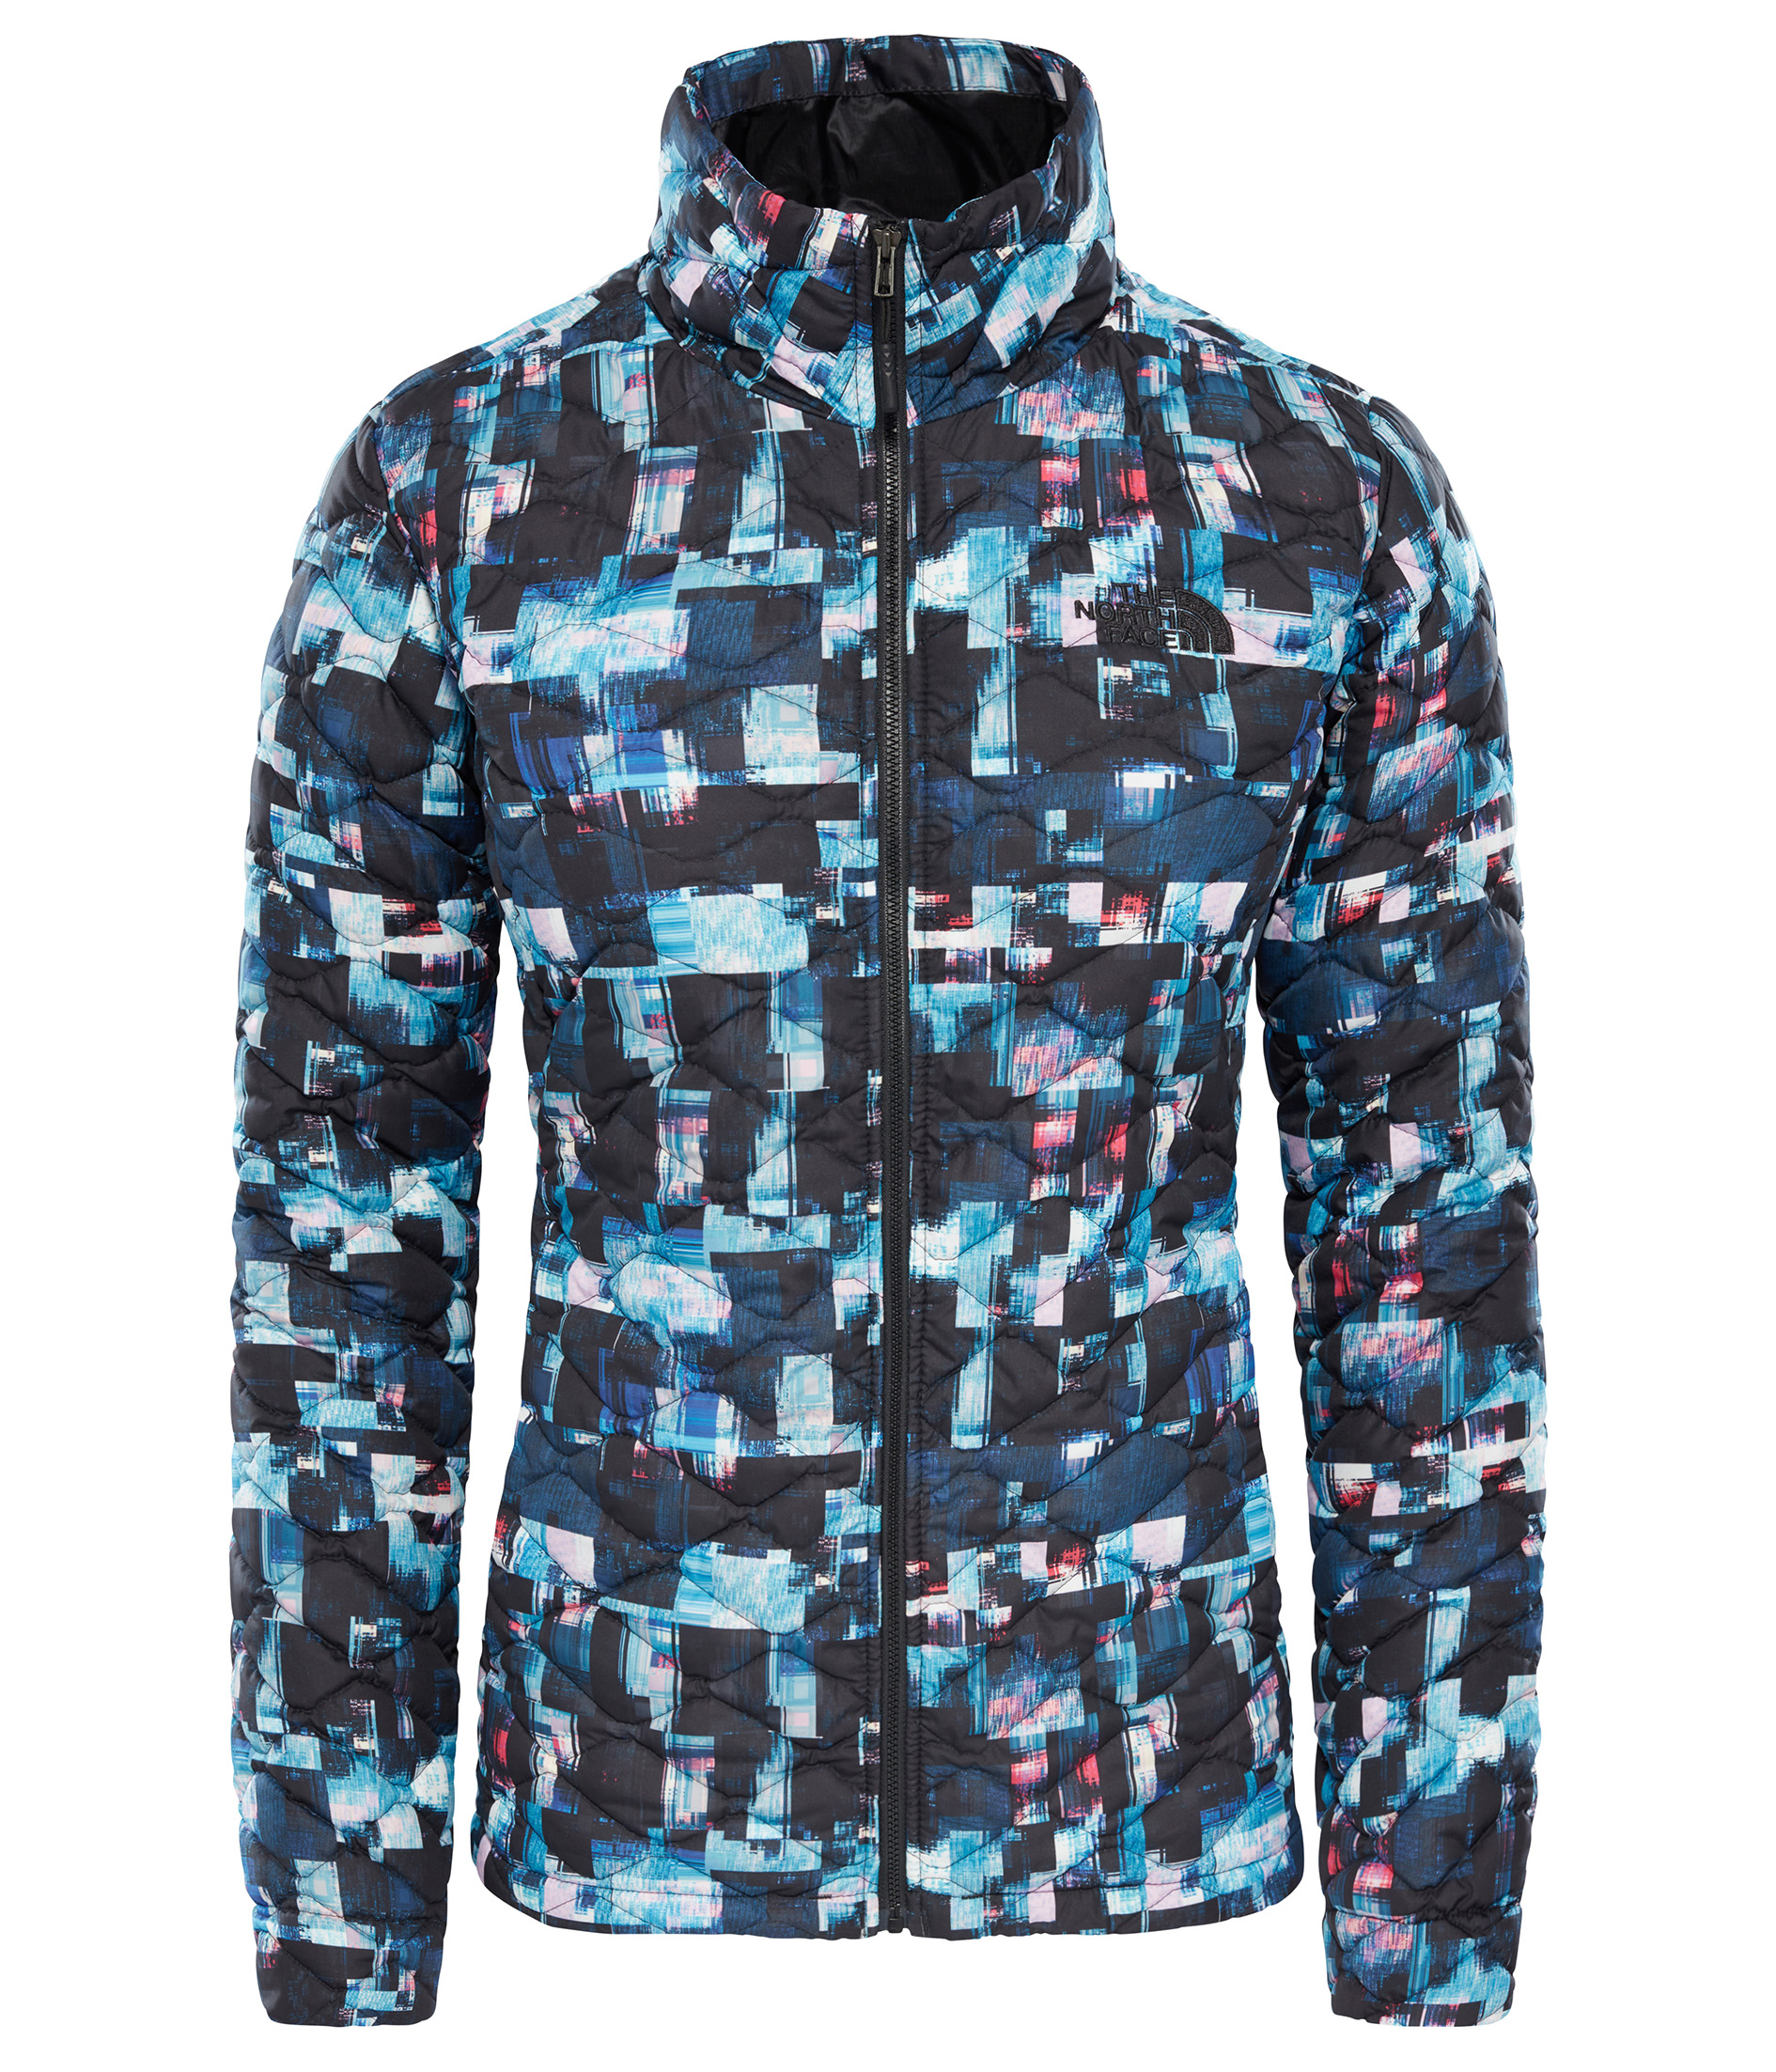 THE NORTH FACE W THERMOBALL™ JACKET, MULTI GLITCH PR velikost: M